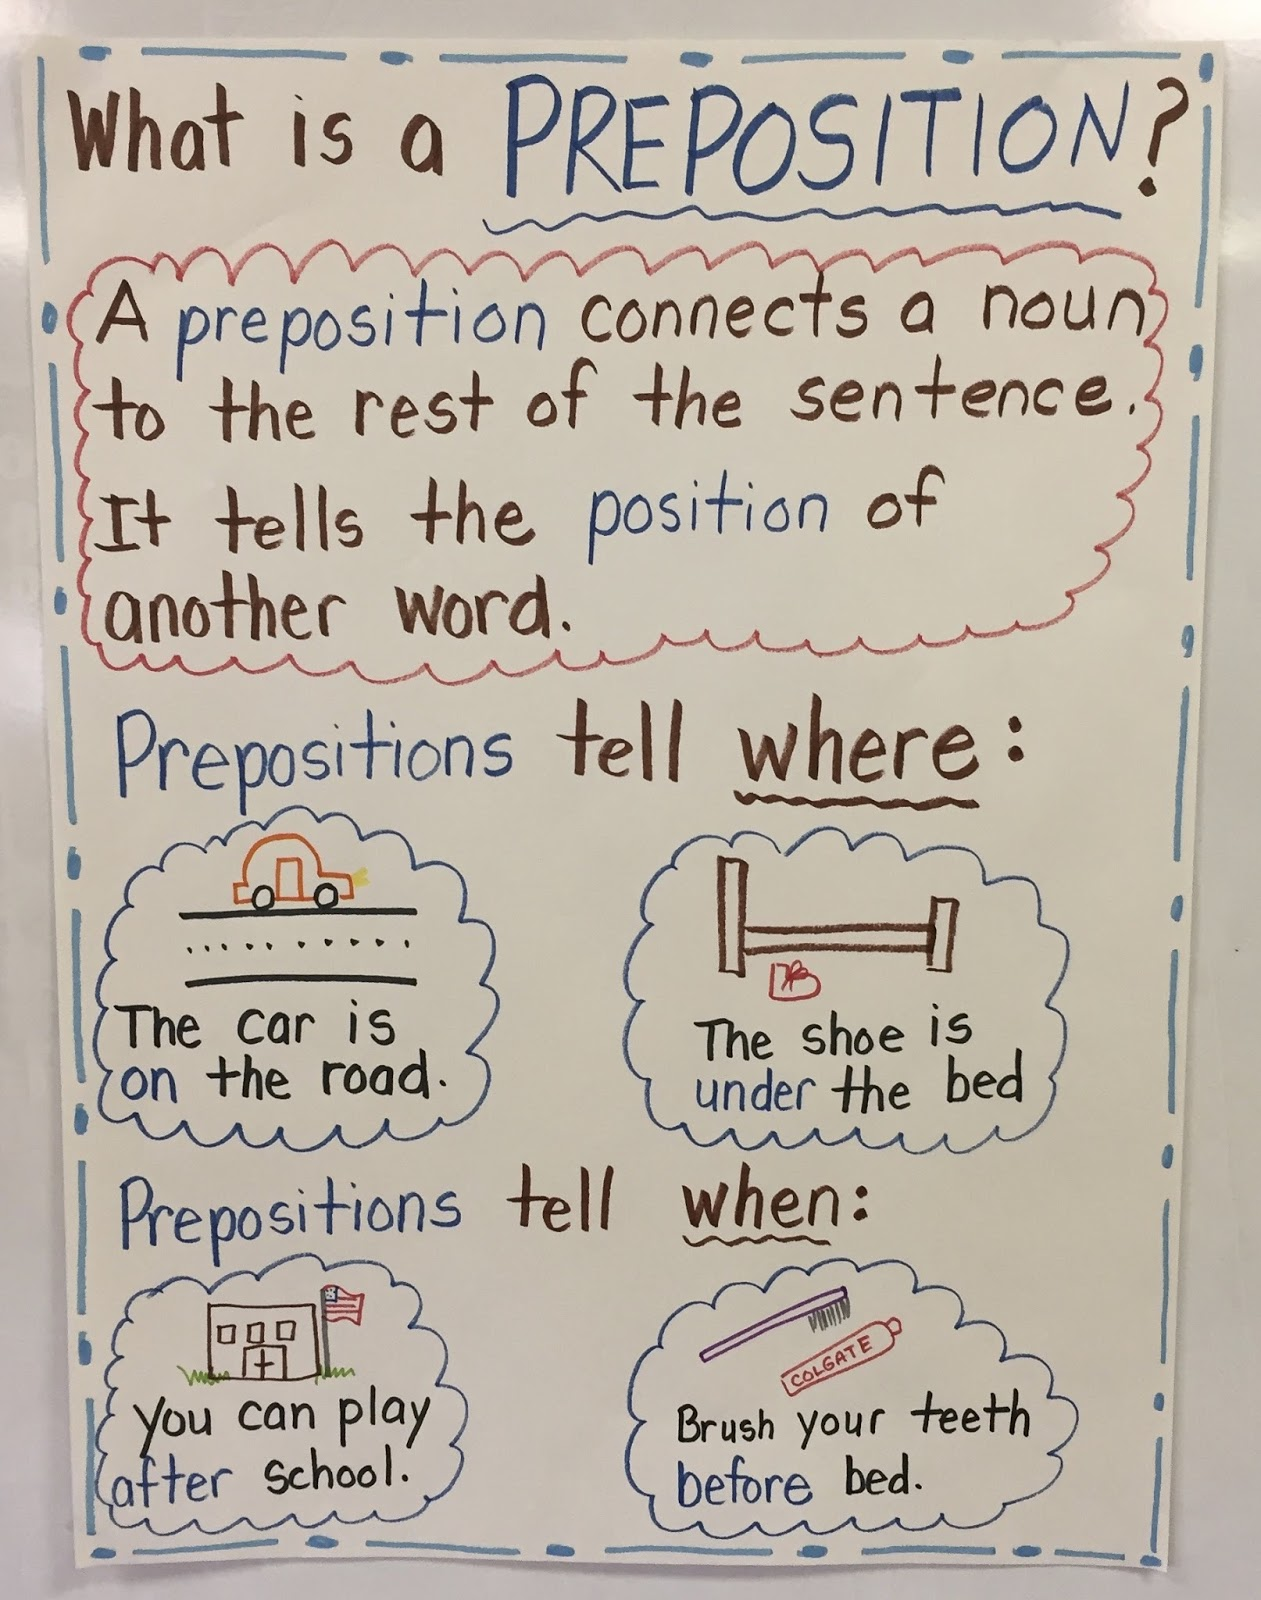 medium resolution of Prepositional Phrases Worksheet Middle School   Printable Worksheets and  Activities for Teachers